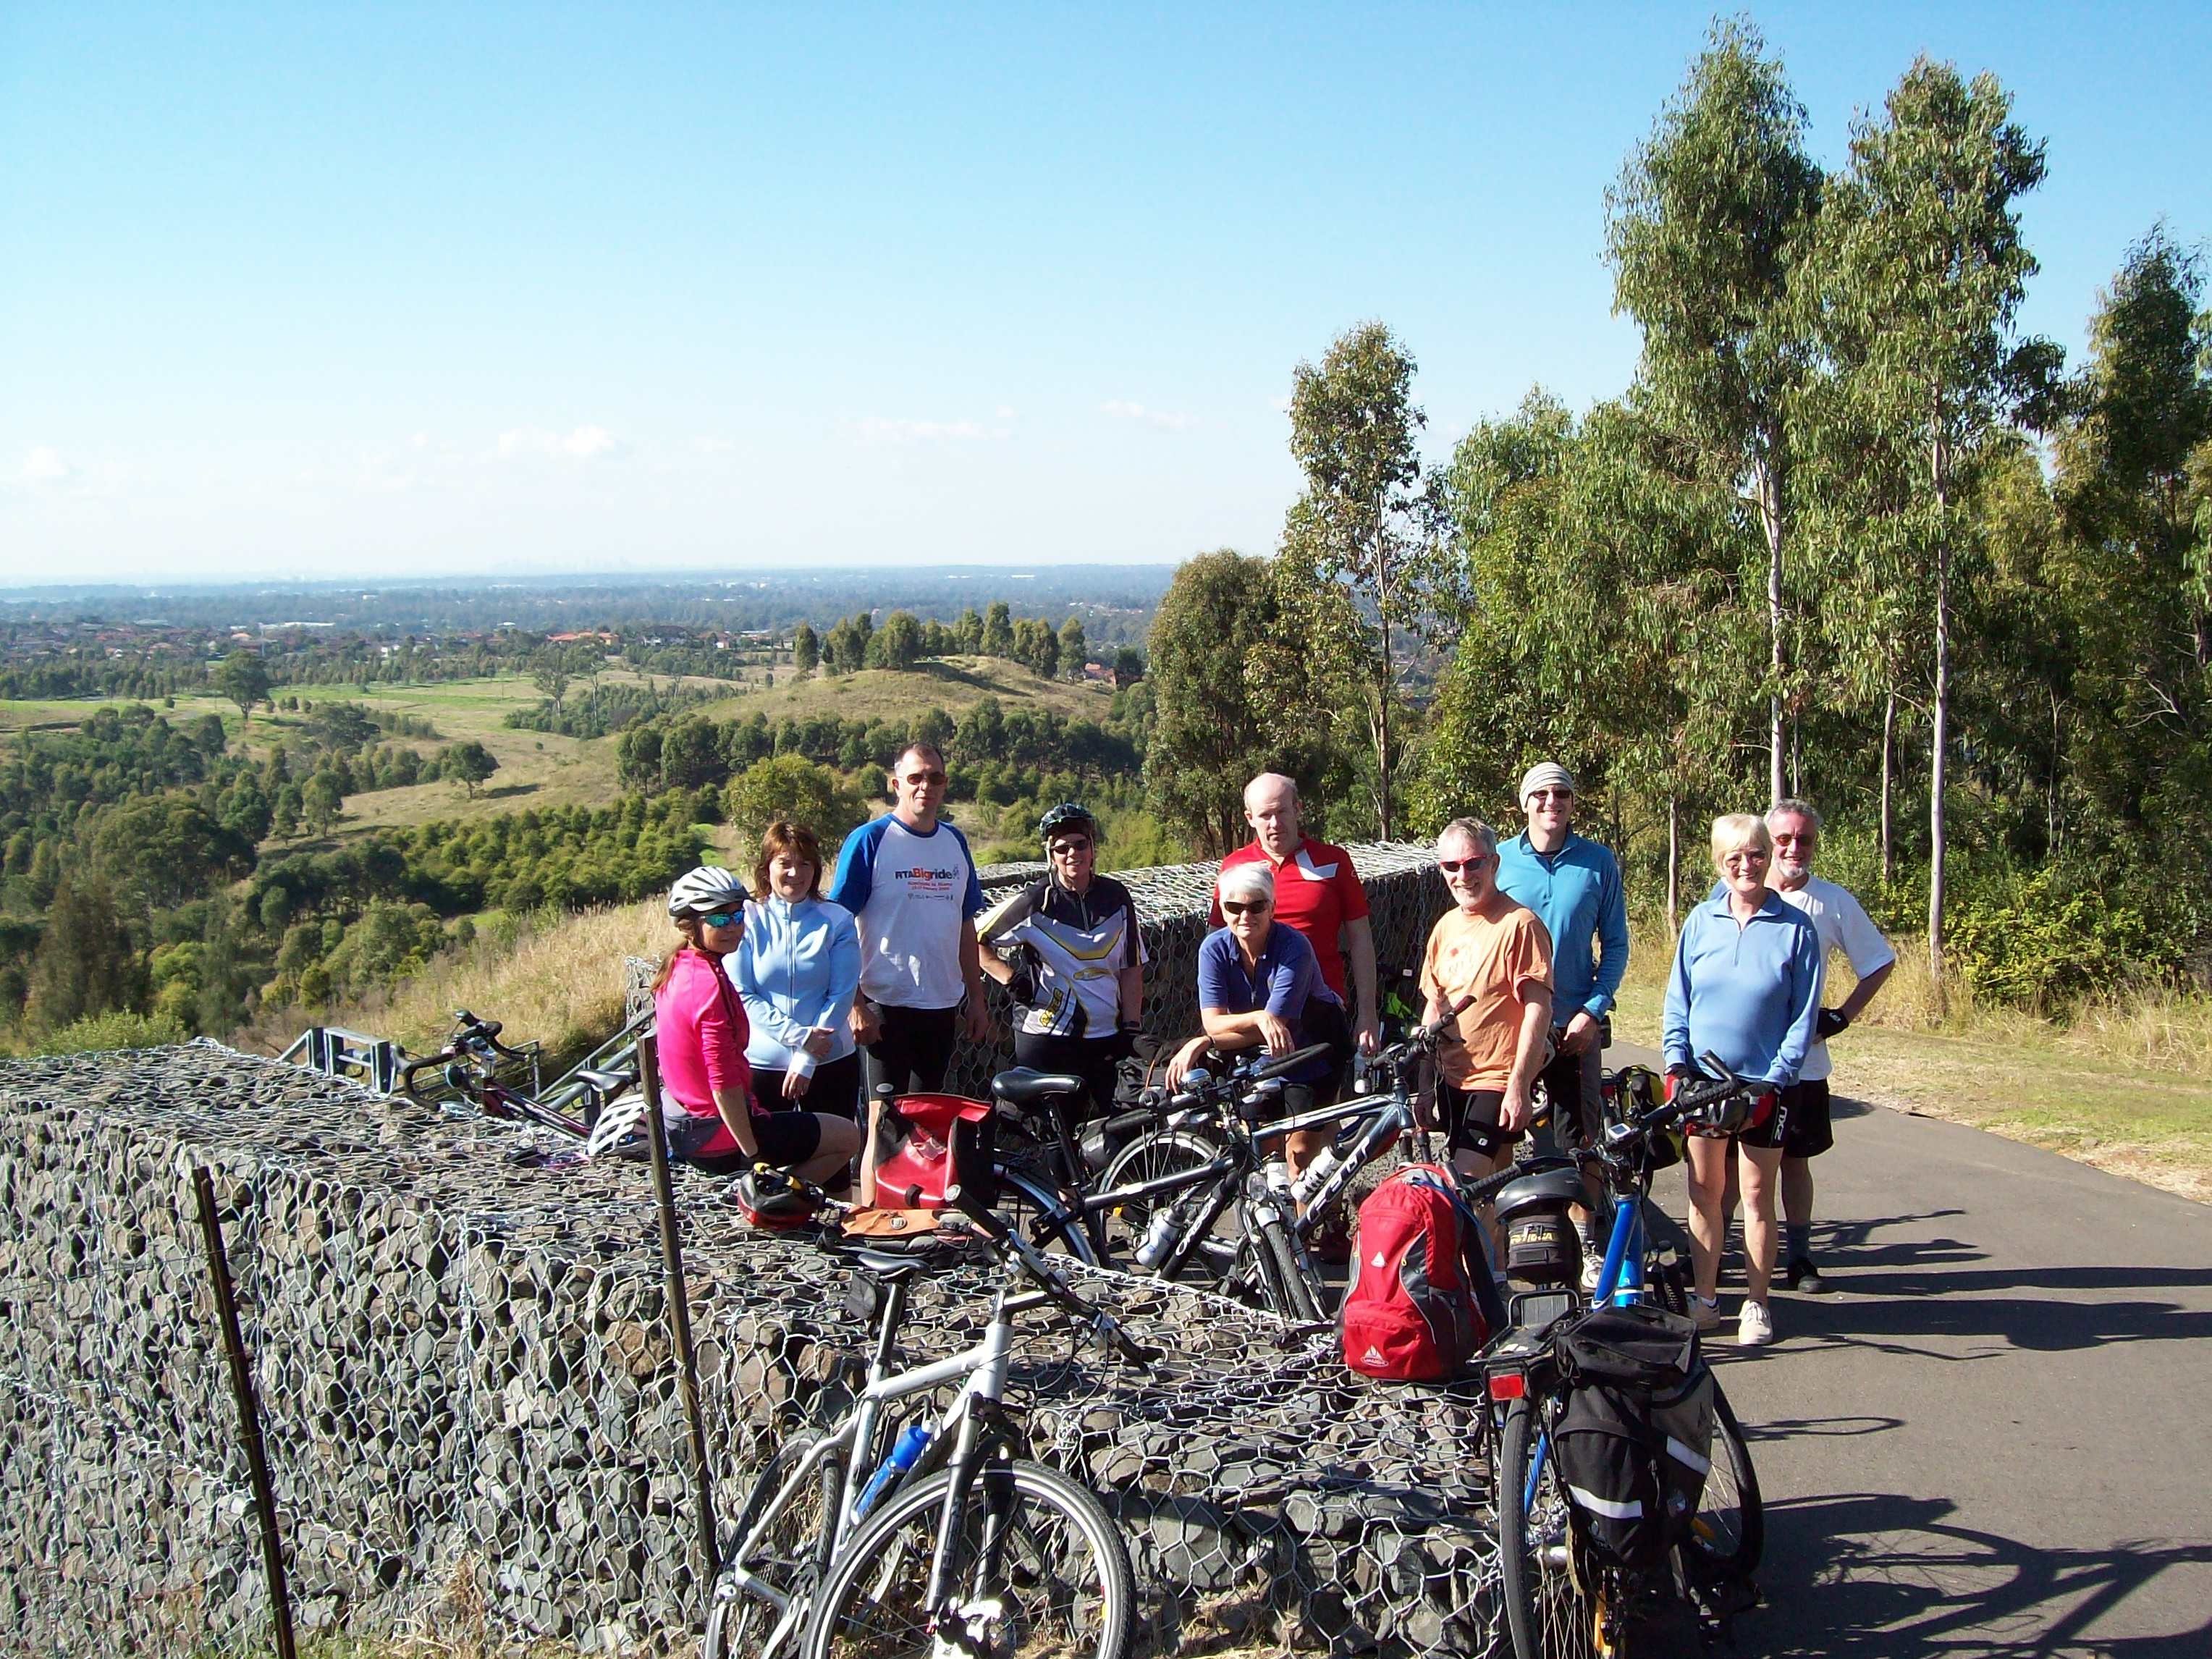 Here Is A Photo Taken At Sugarloaf Ridge Picnic Area In Western Sydney Regional Park Last